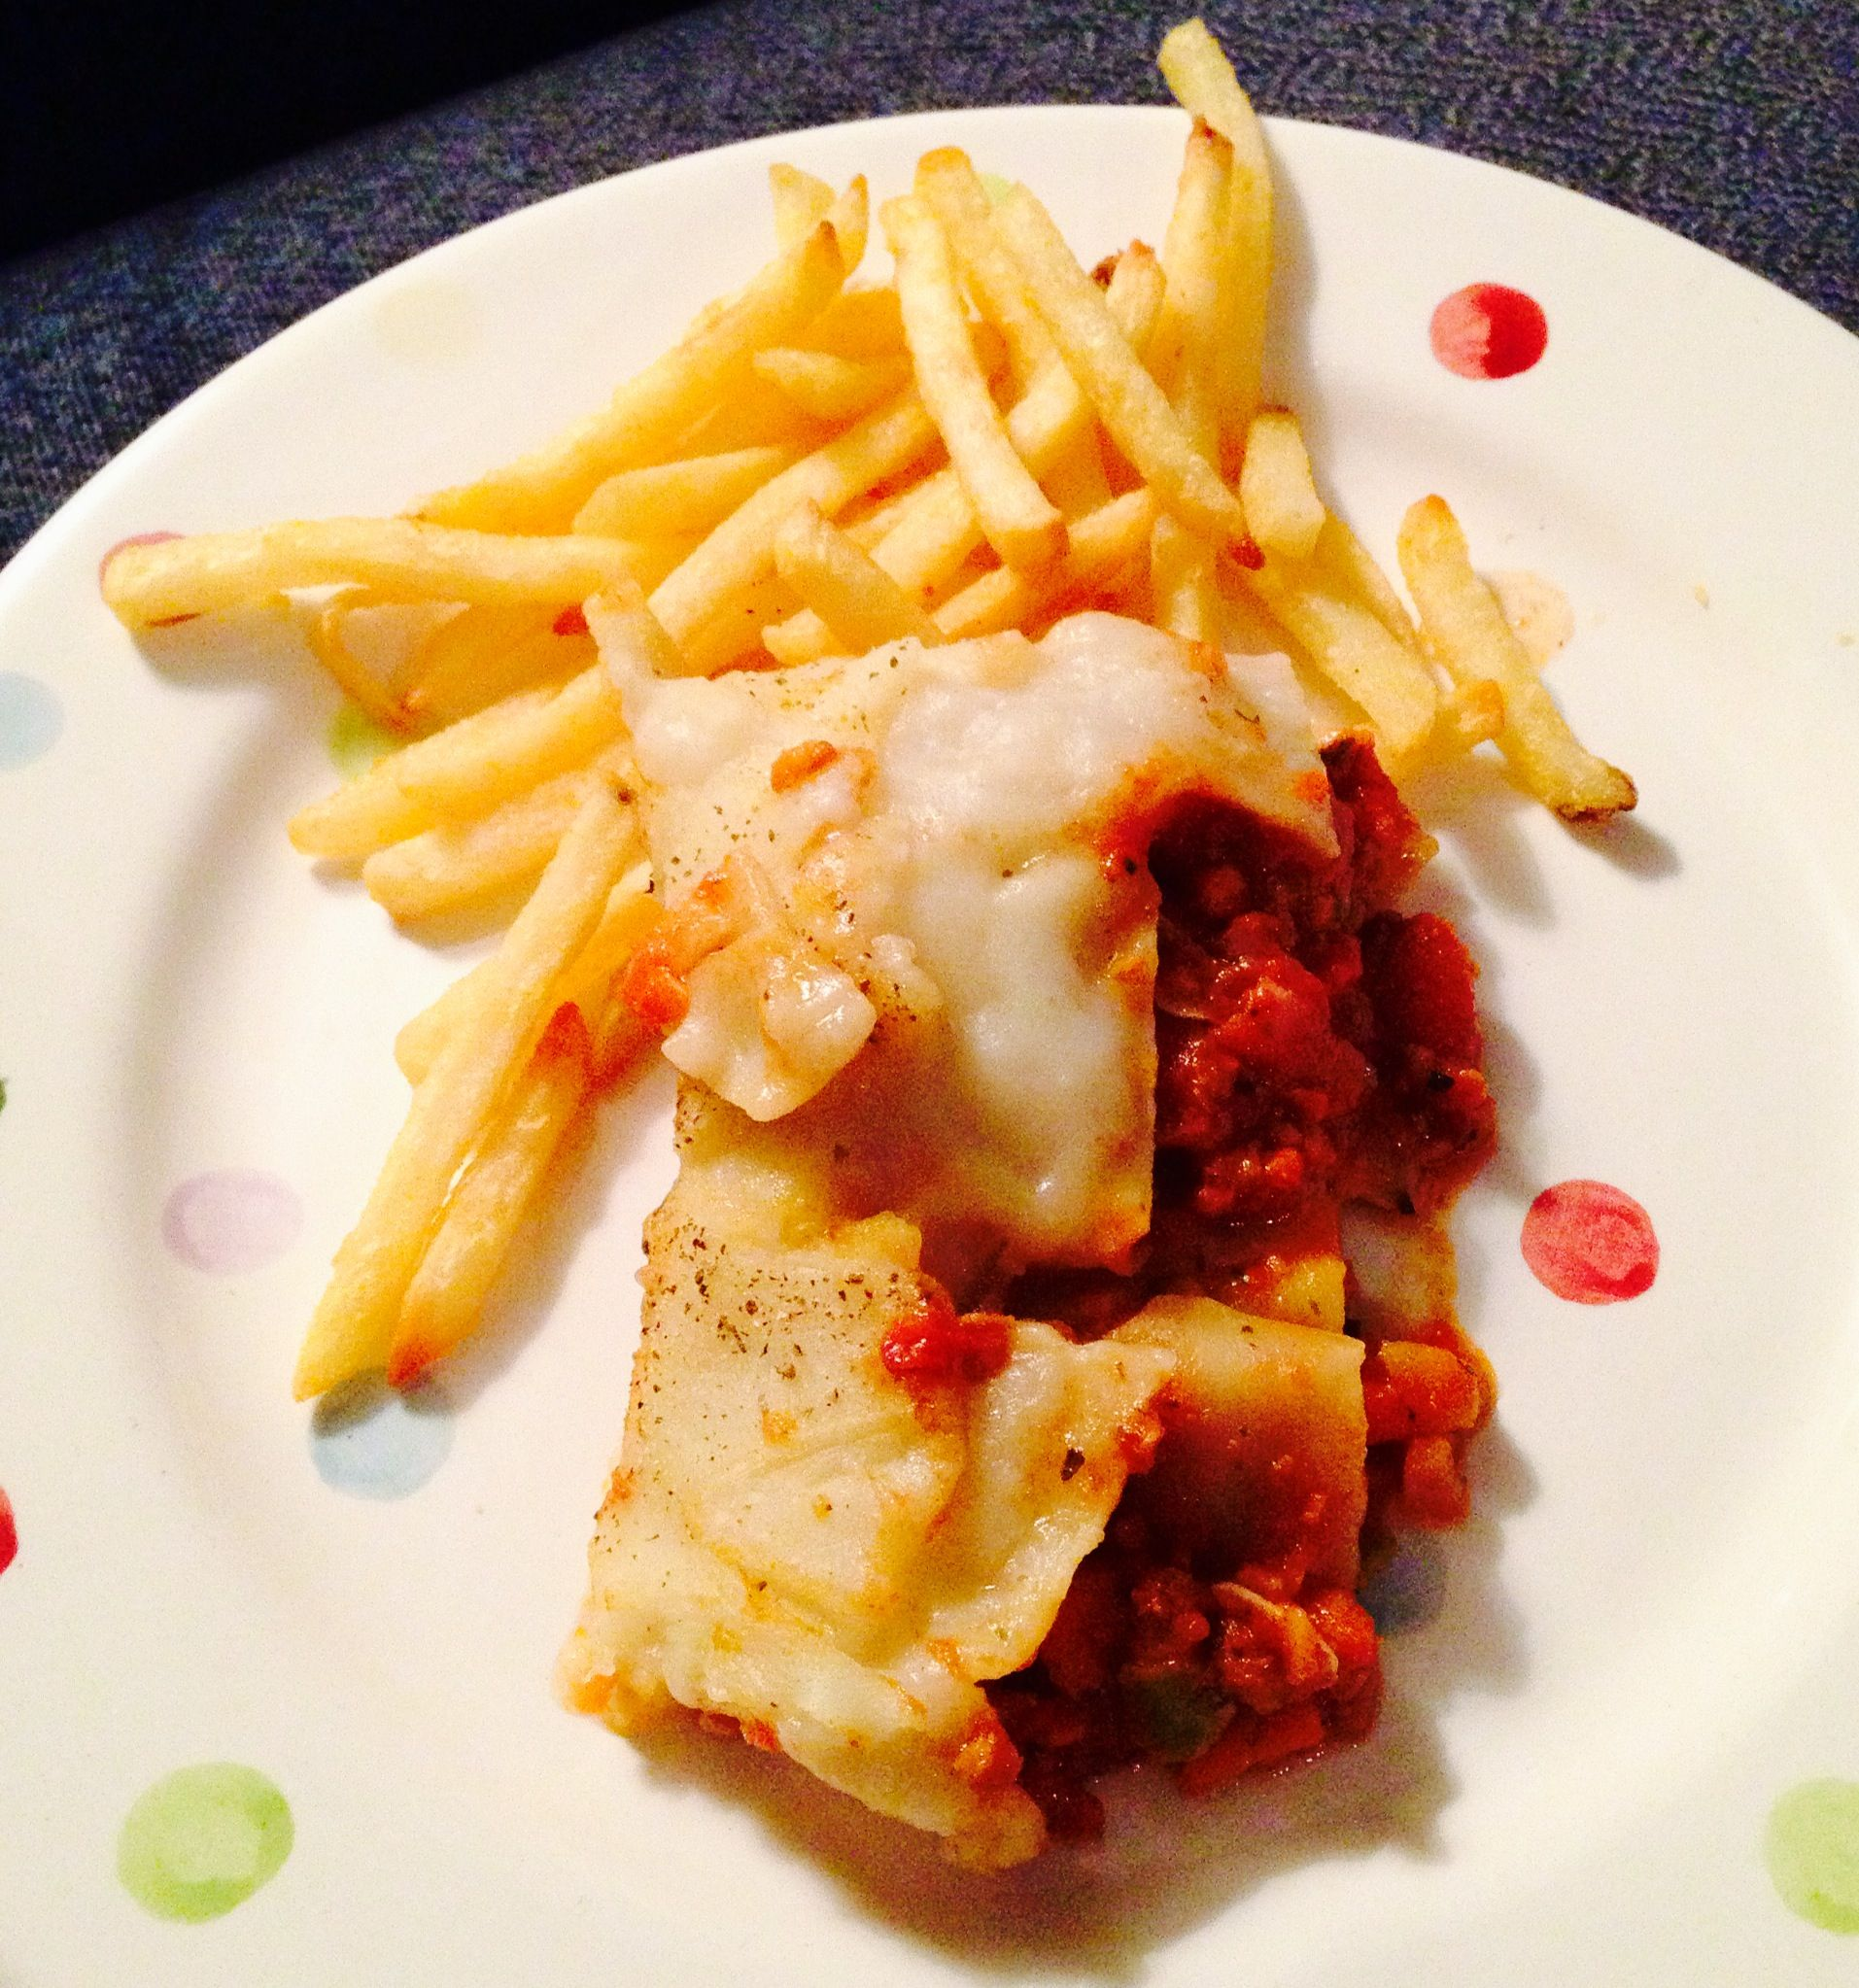 Day 10: Dinner, Vegan lasagne, homemade with Tesco Frozen meat free bolognese mix, egg free lasagne and vegan cheese sauce #vegan #notthesame